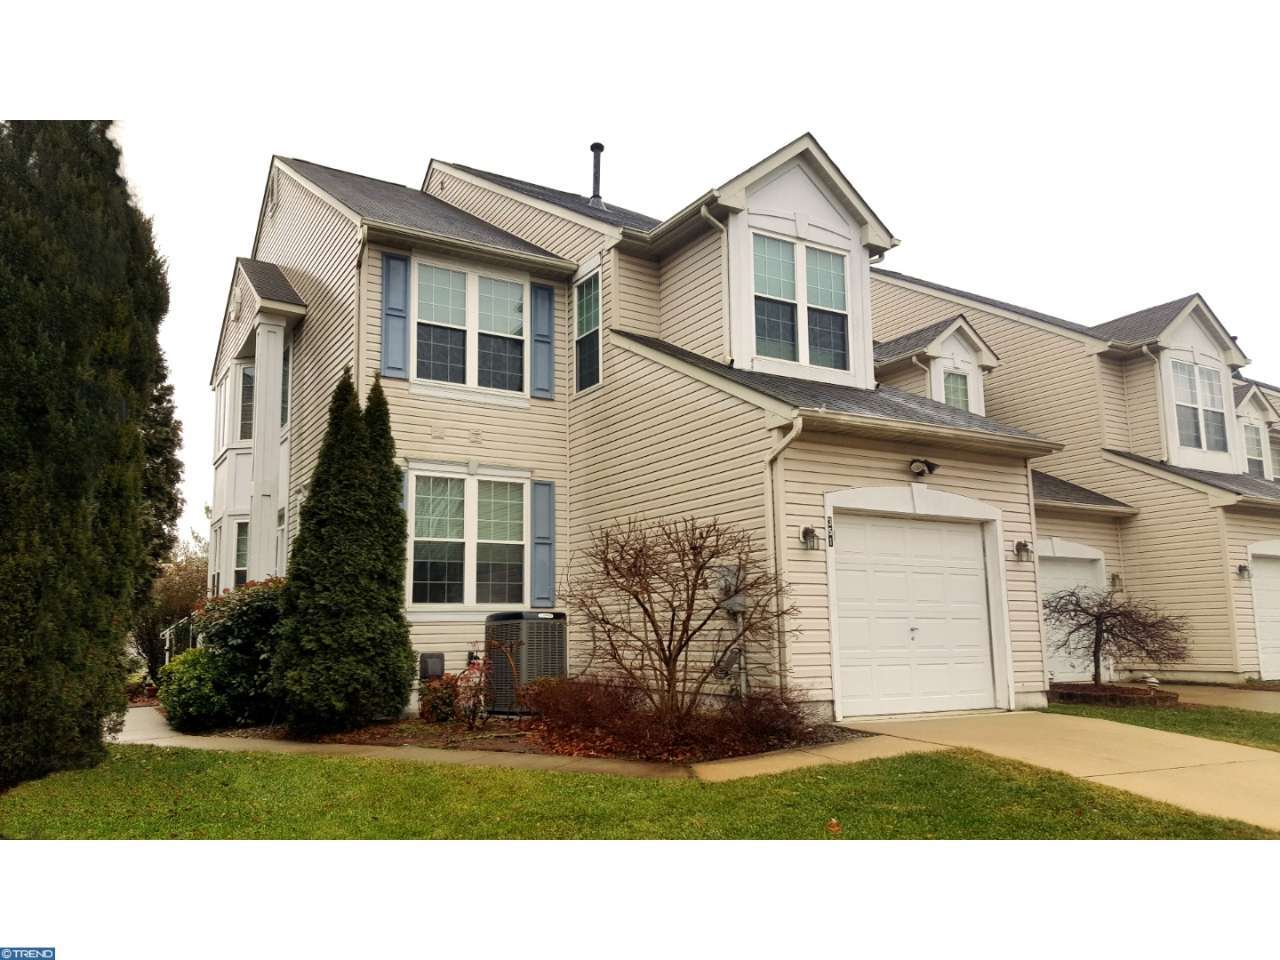 351 Tuvira Ln, Cherry Hill, NJ 08003